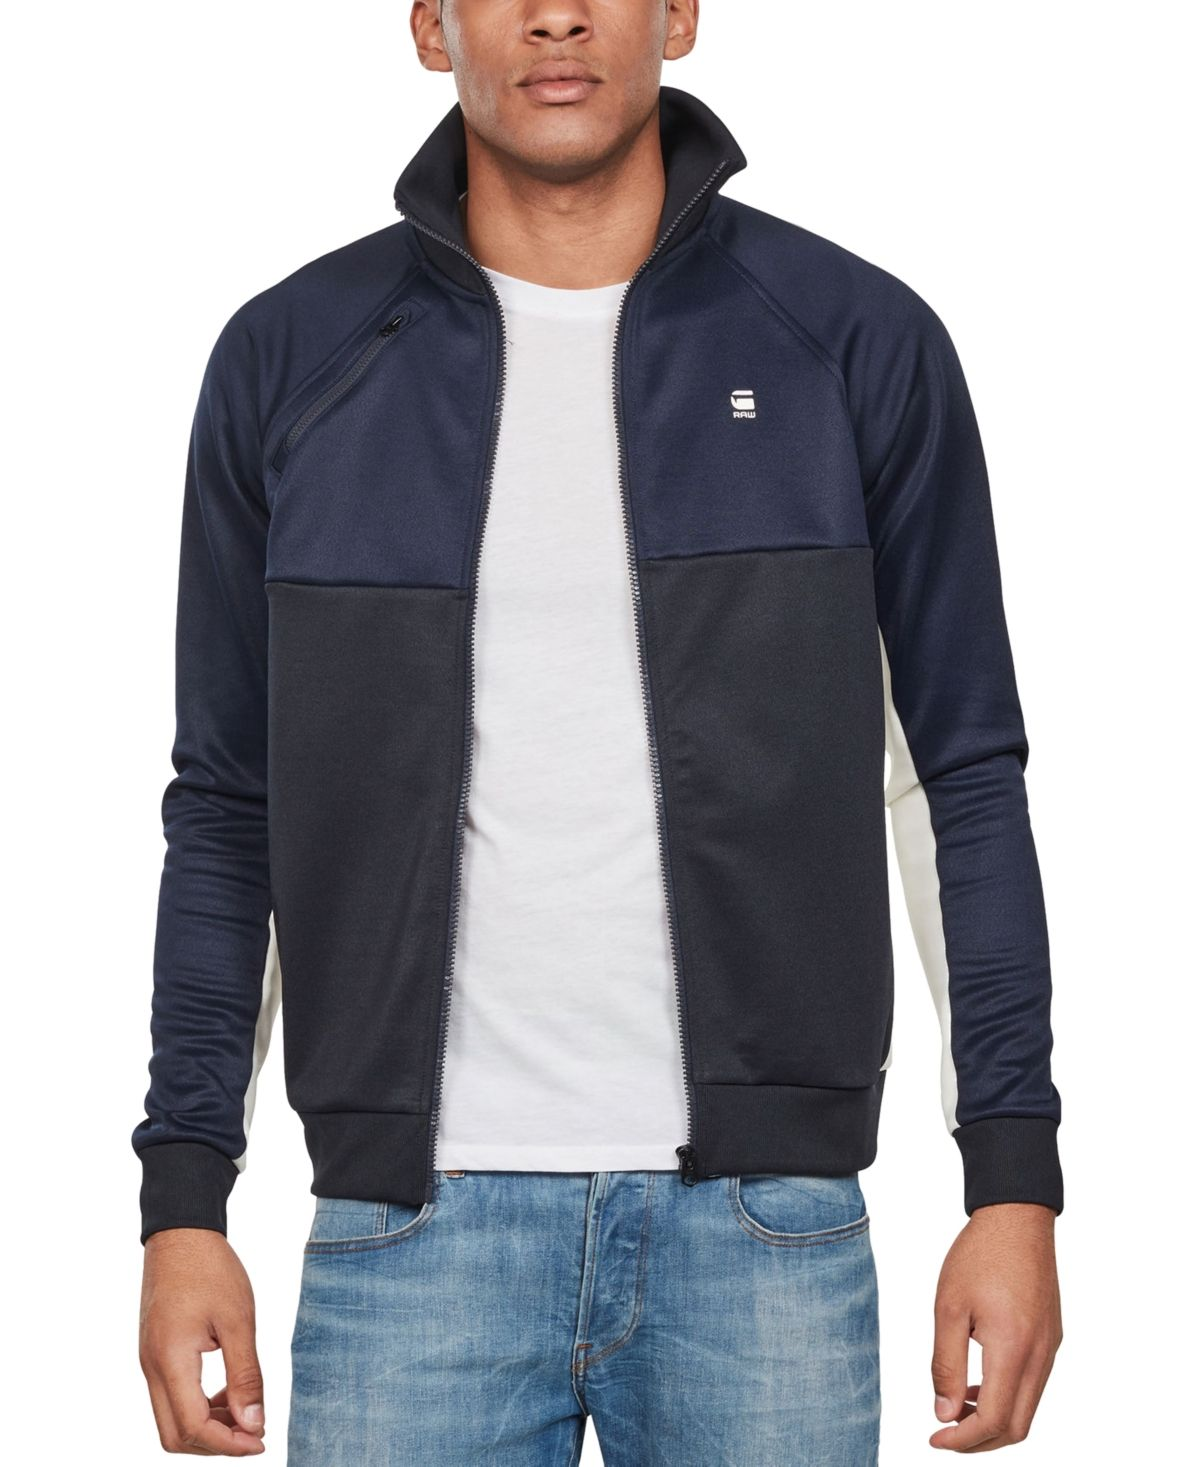 G Star Raw Men's Ore Tracktop Raglan Jacket, Created for